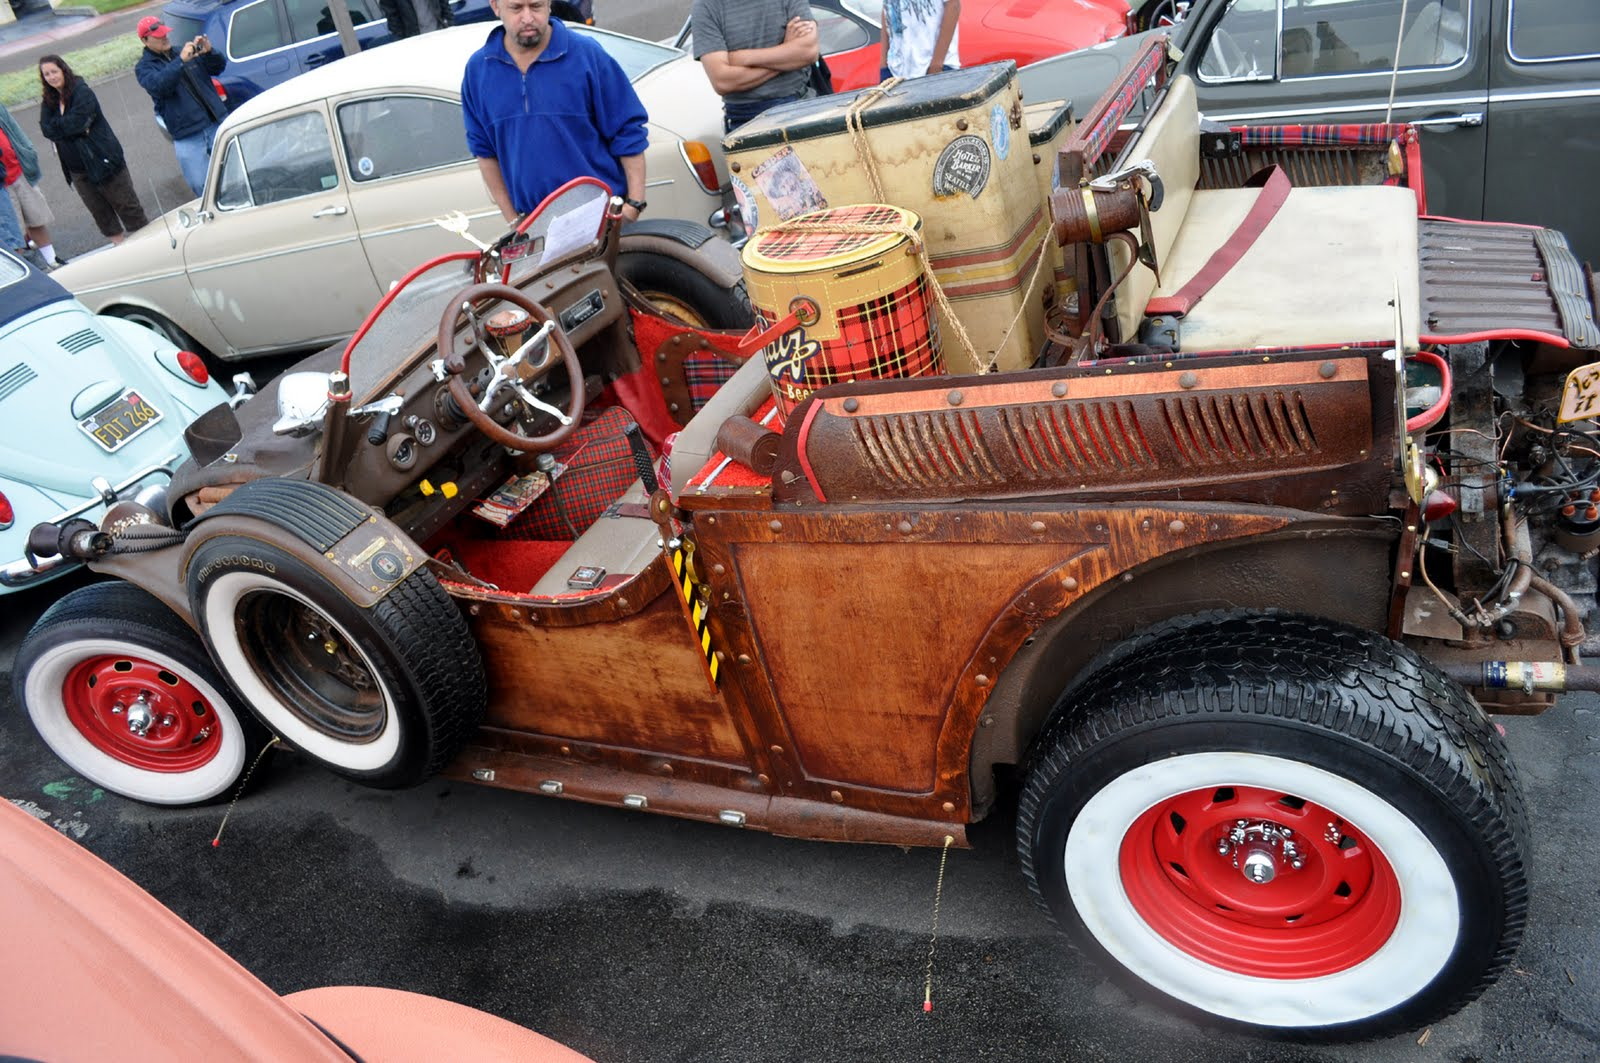 Just a car guy dennis has made a very unusual 1964 volksrod rat rod